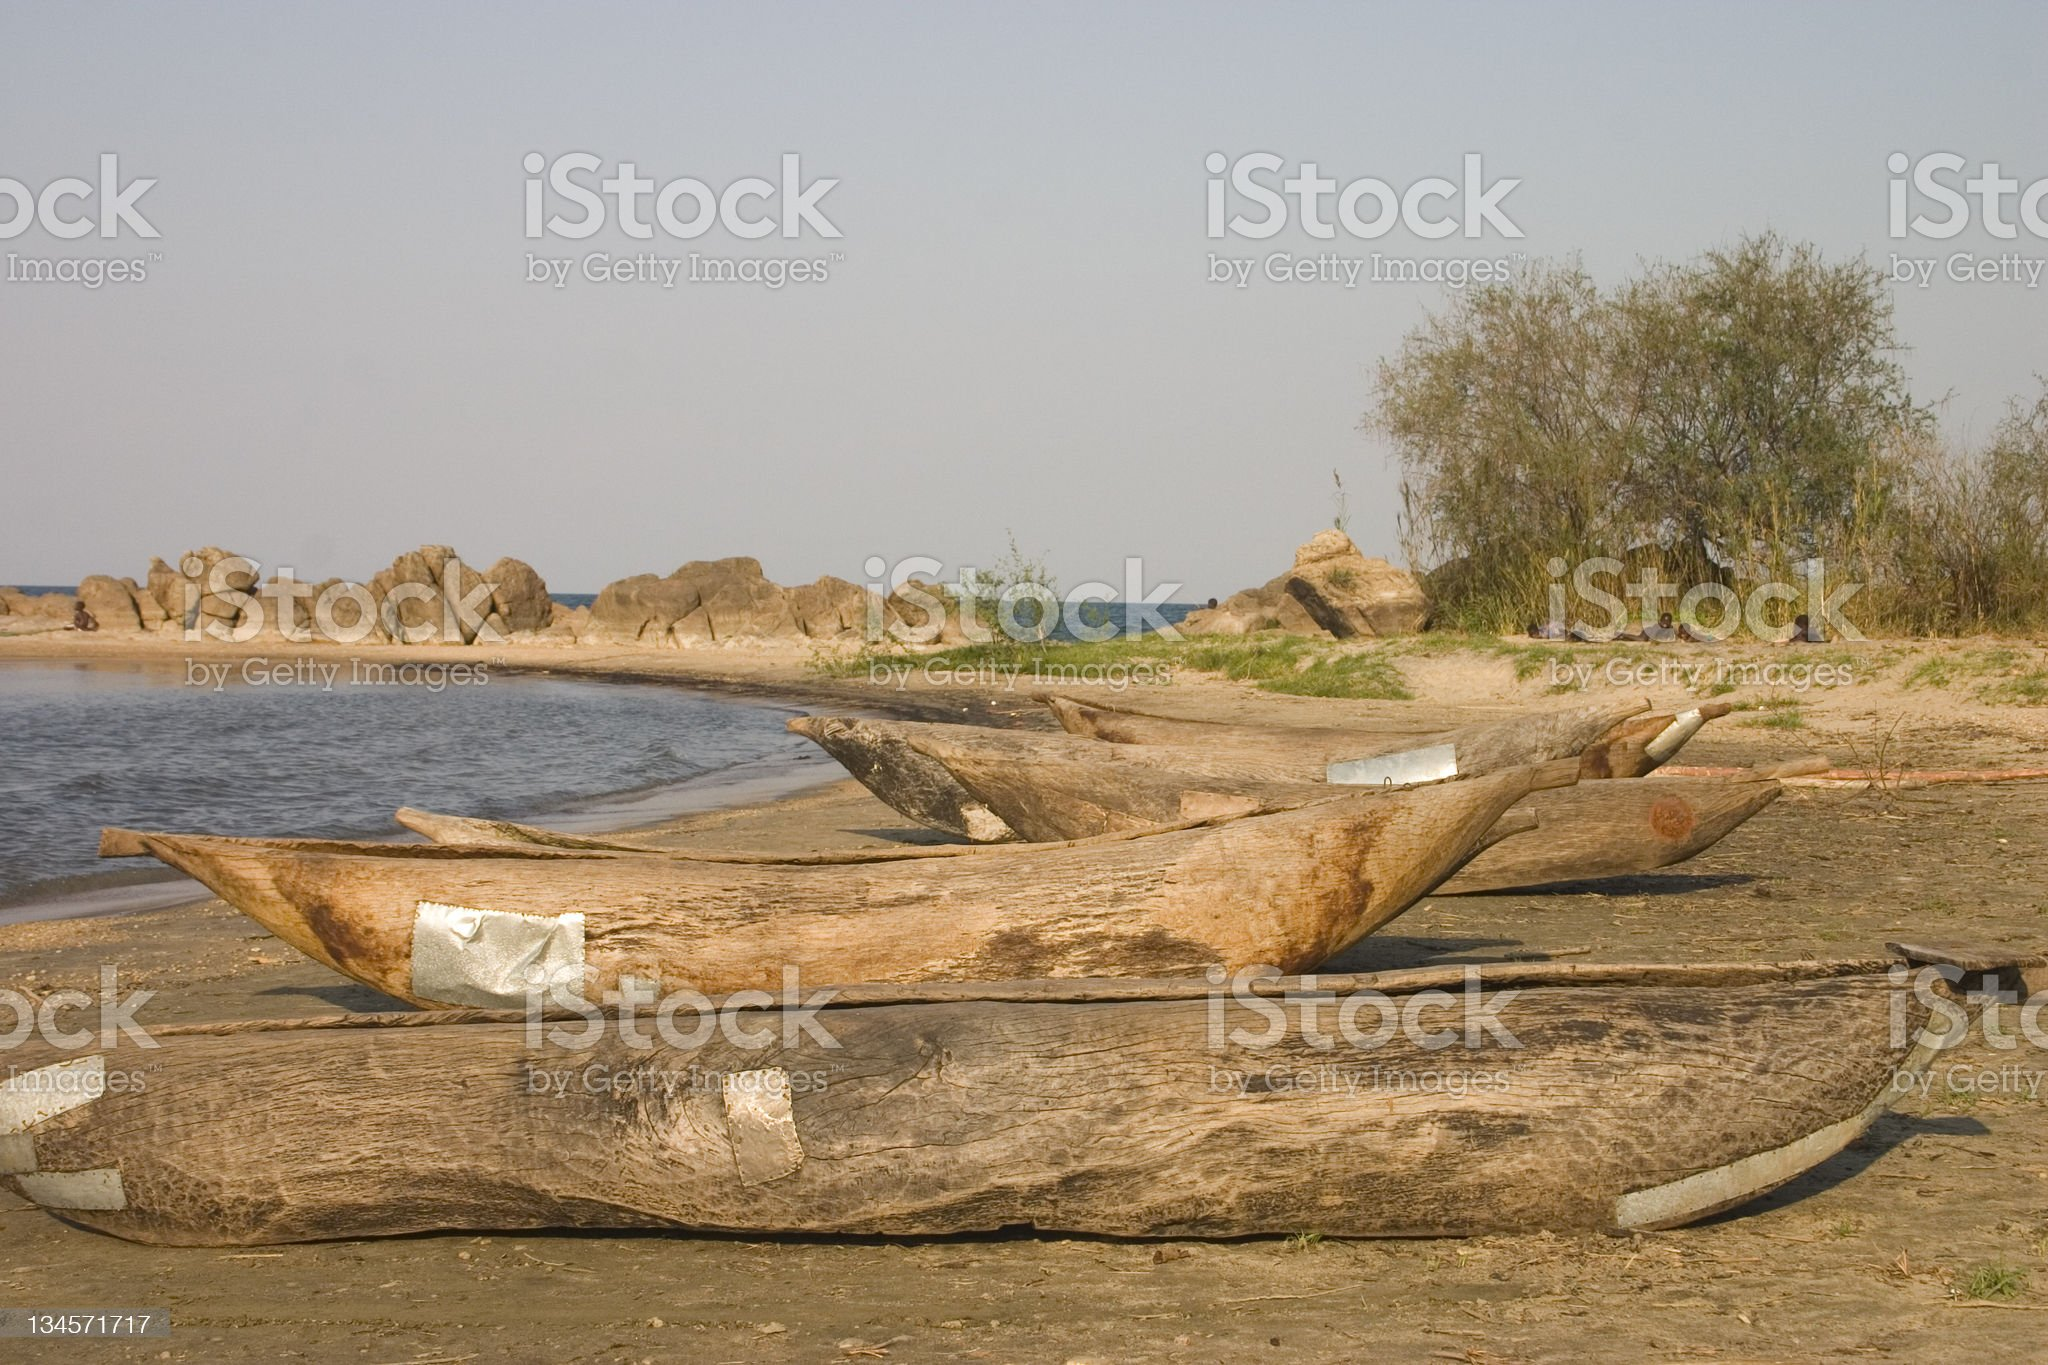 Dug Out Canoes royalty-free stock photo